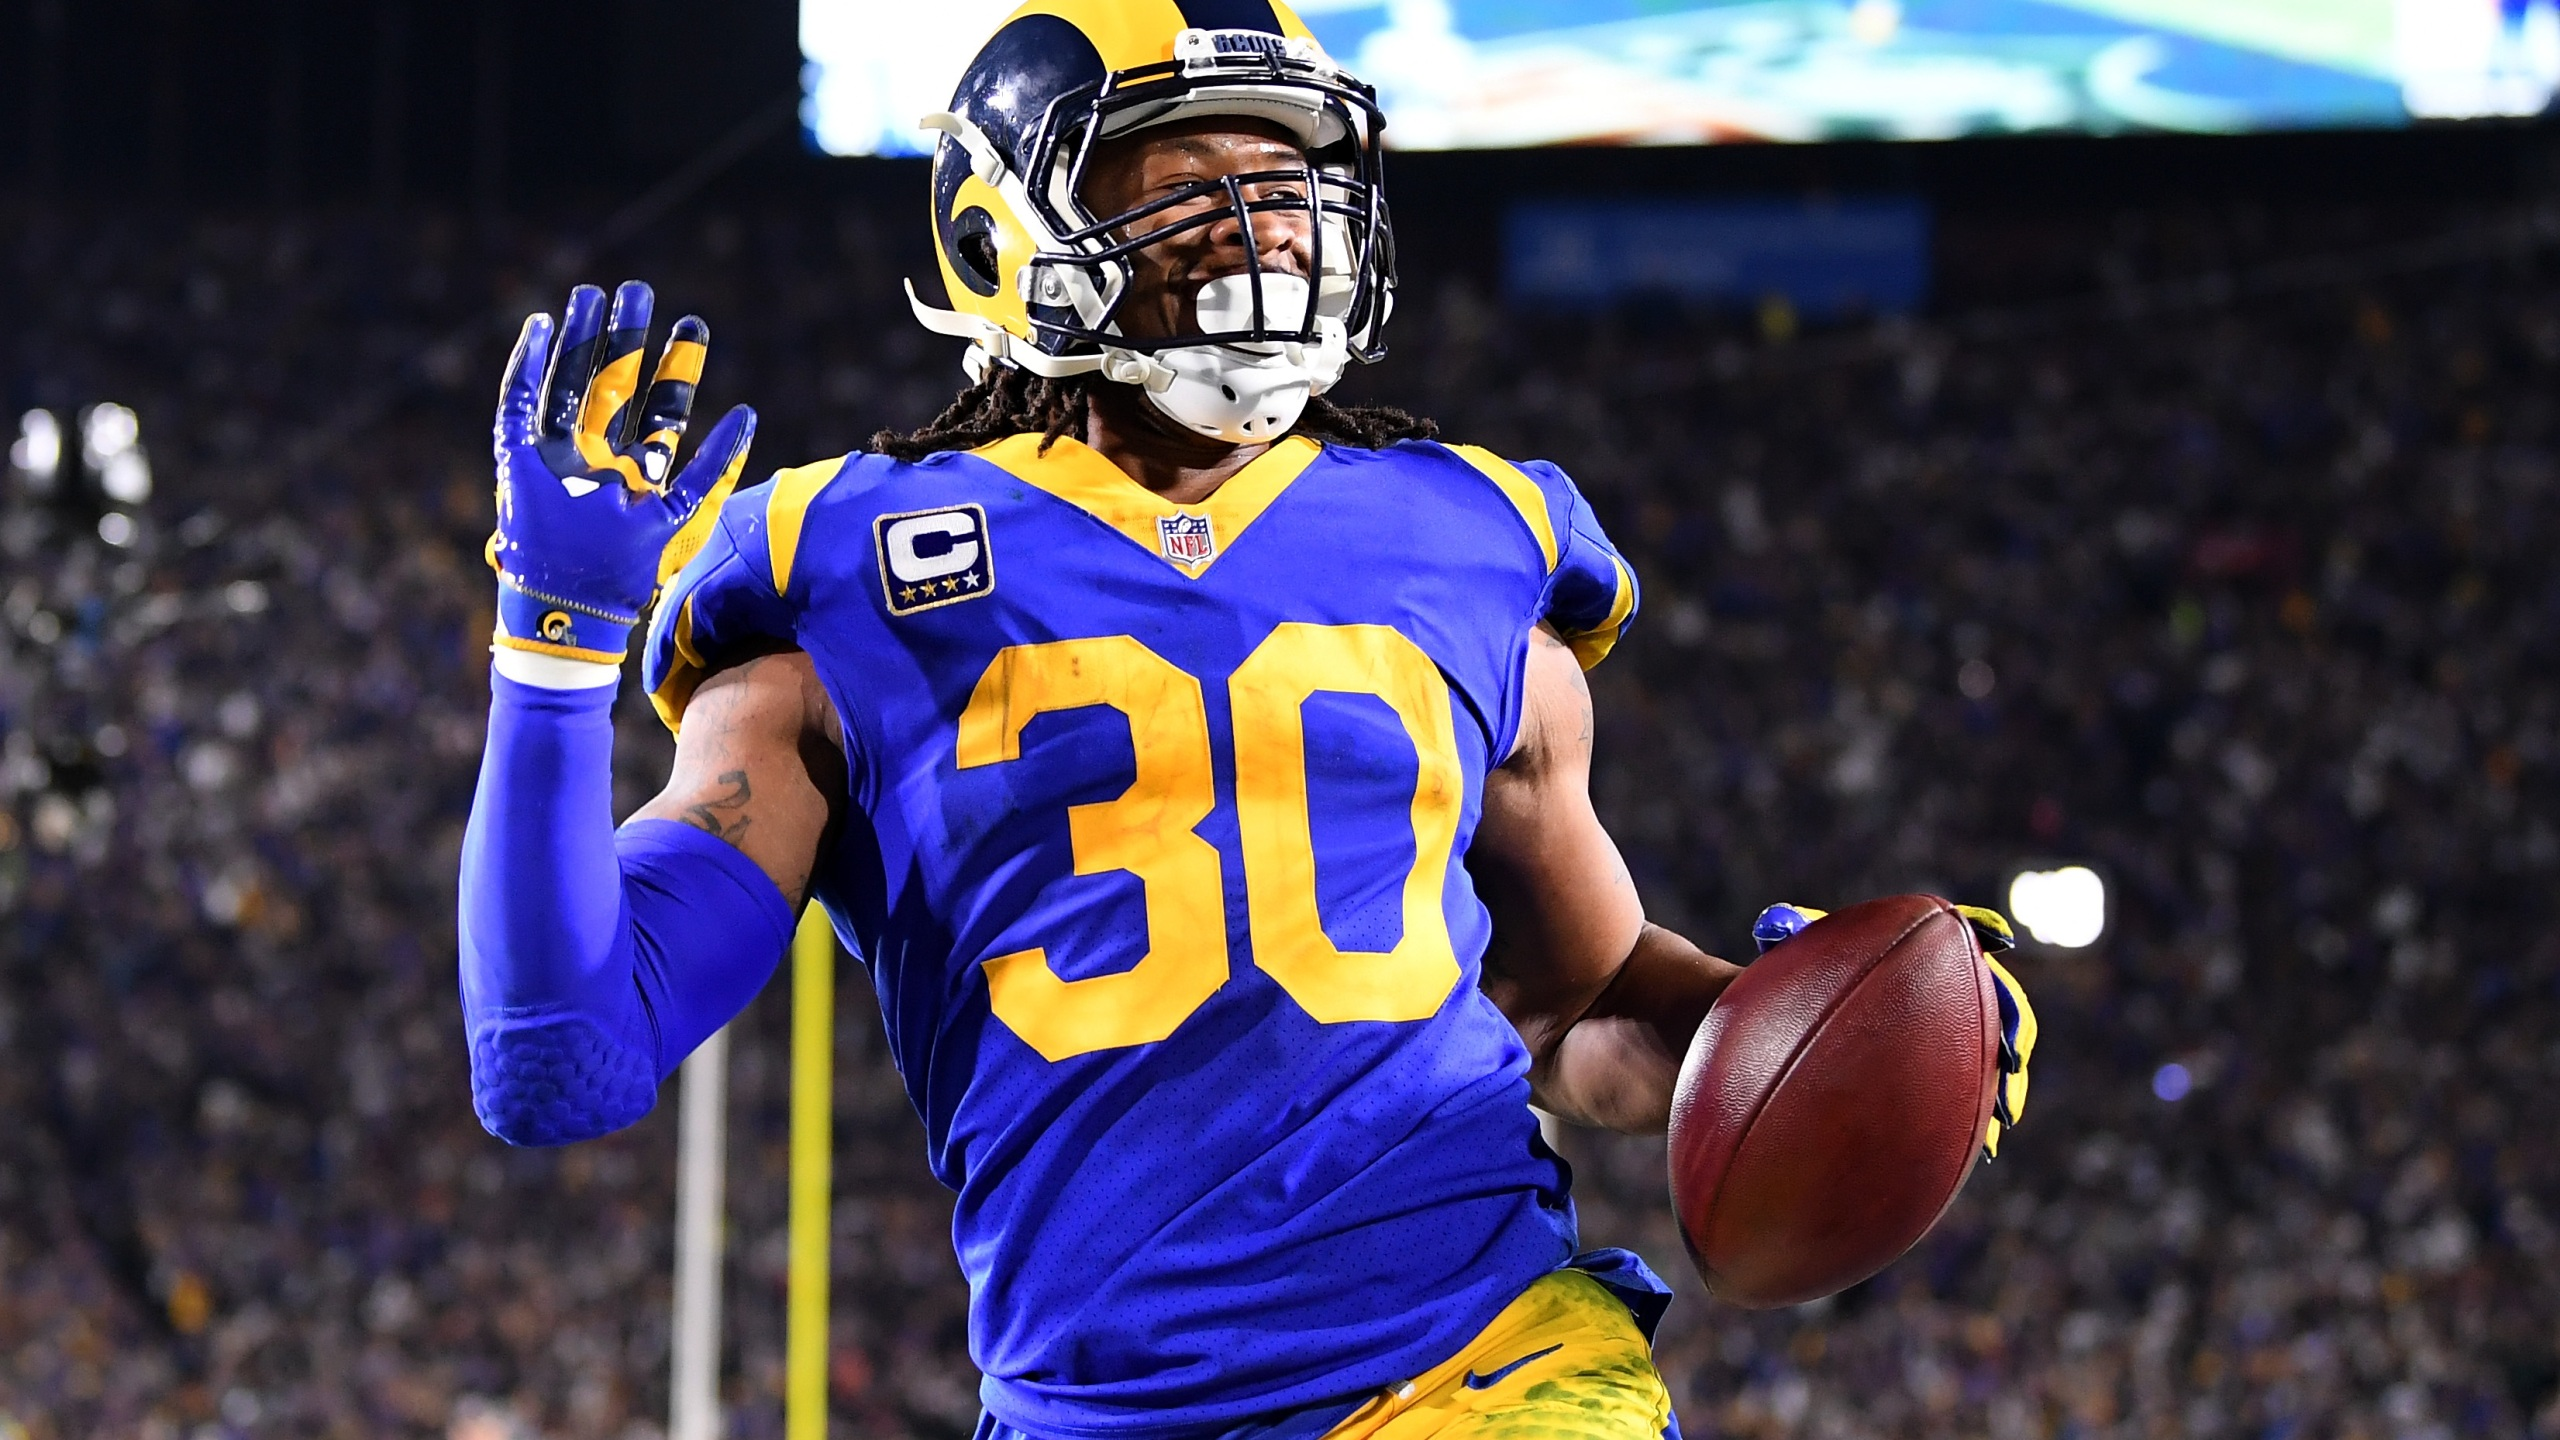 Rams Running Back Todd Gurley Never Forgot His North Carolina Roots